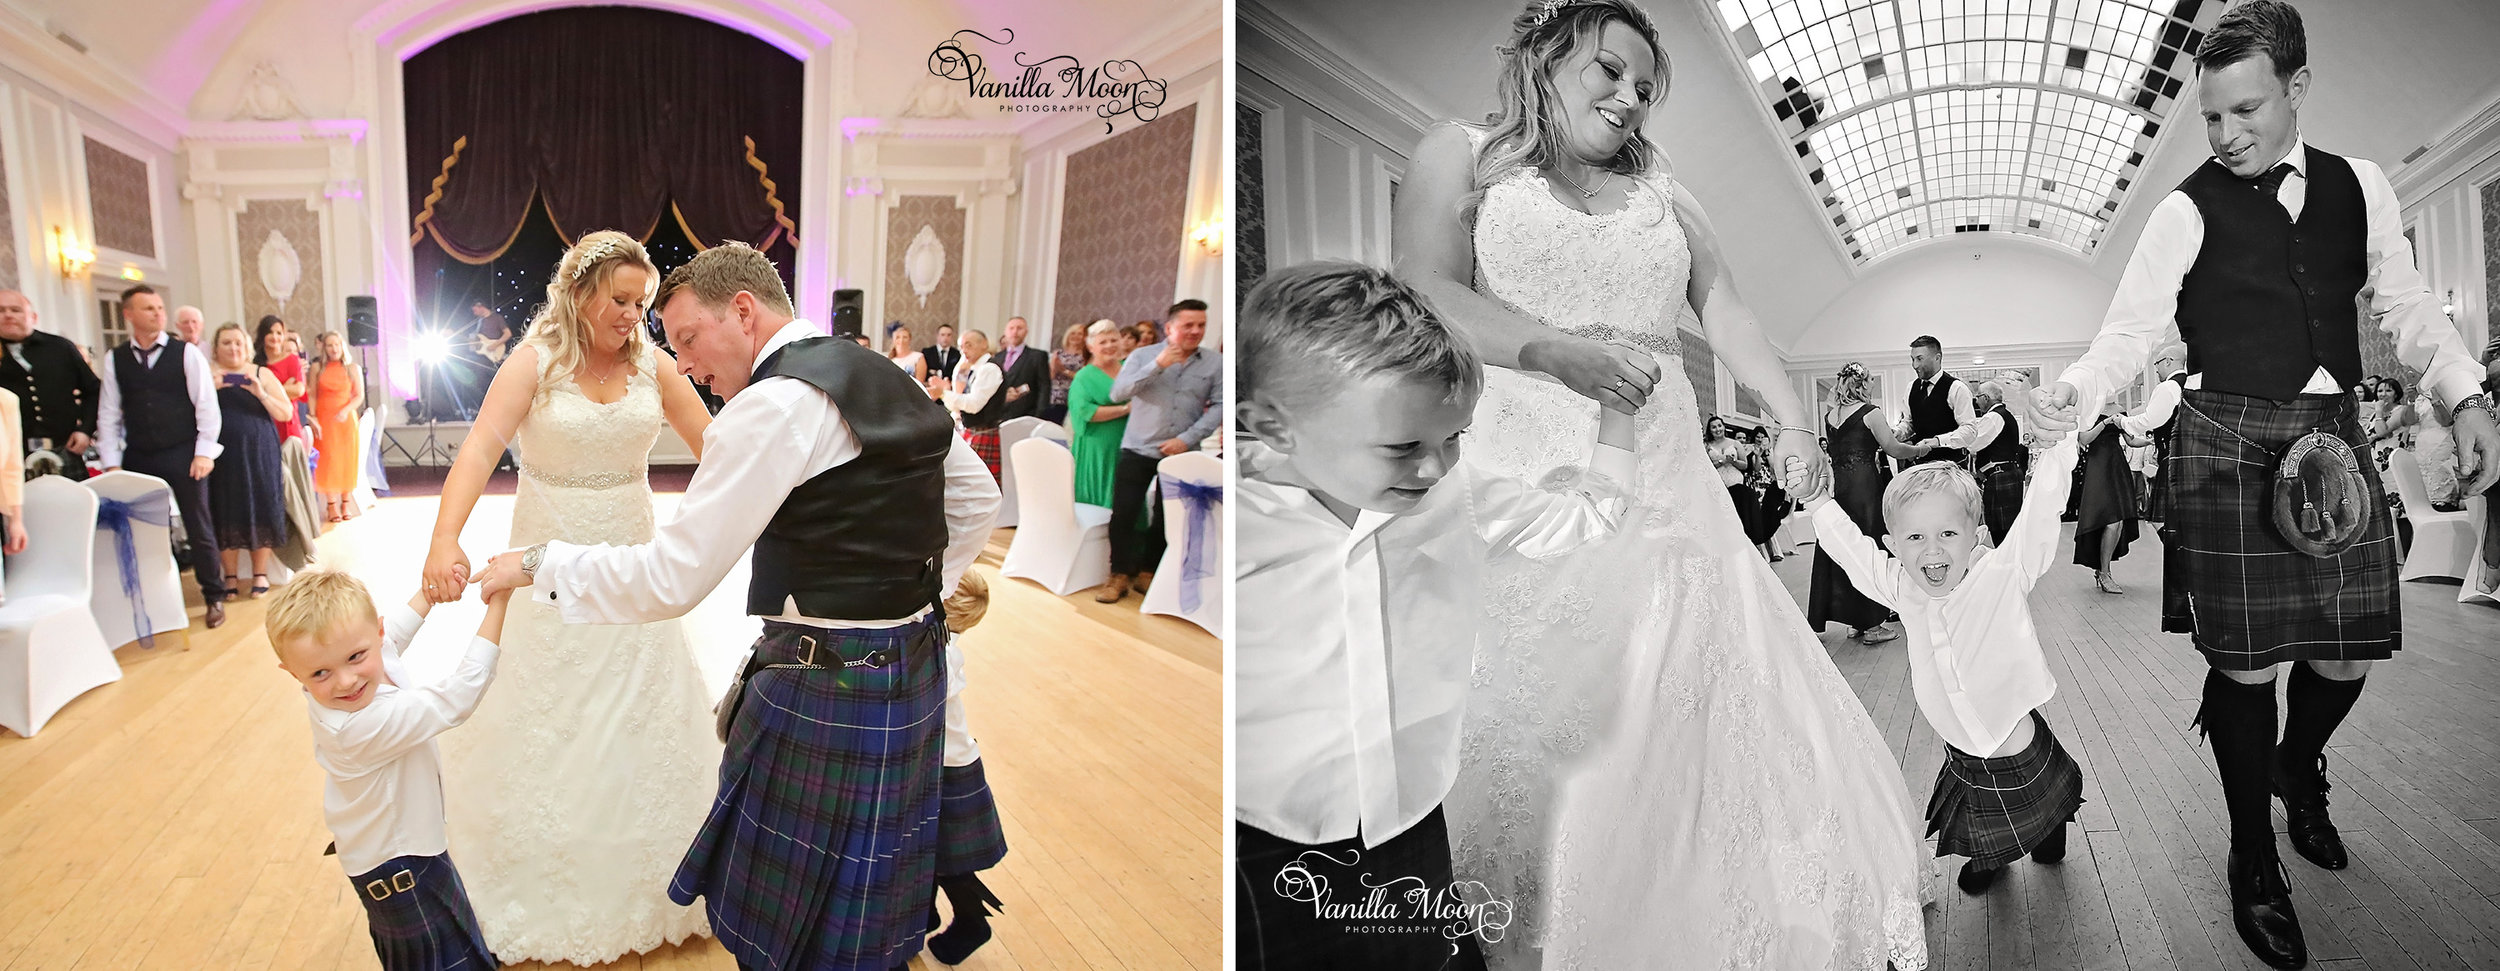 First Dance Wedding Photography Peebles, Scottish Borders, Scotland